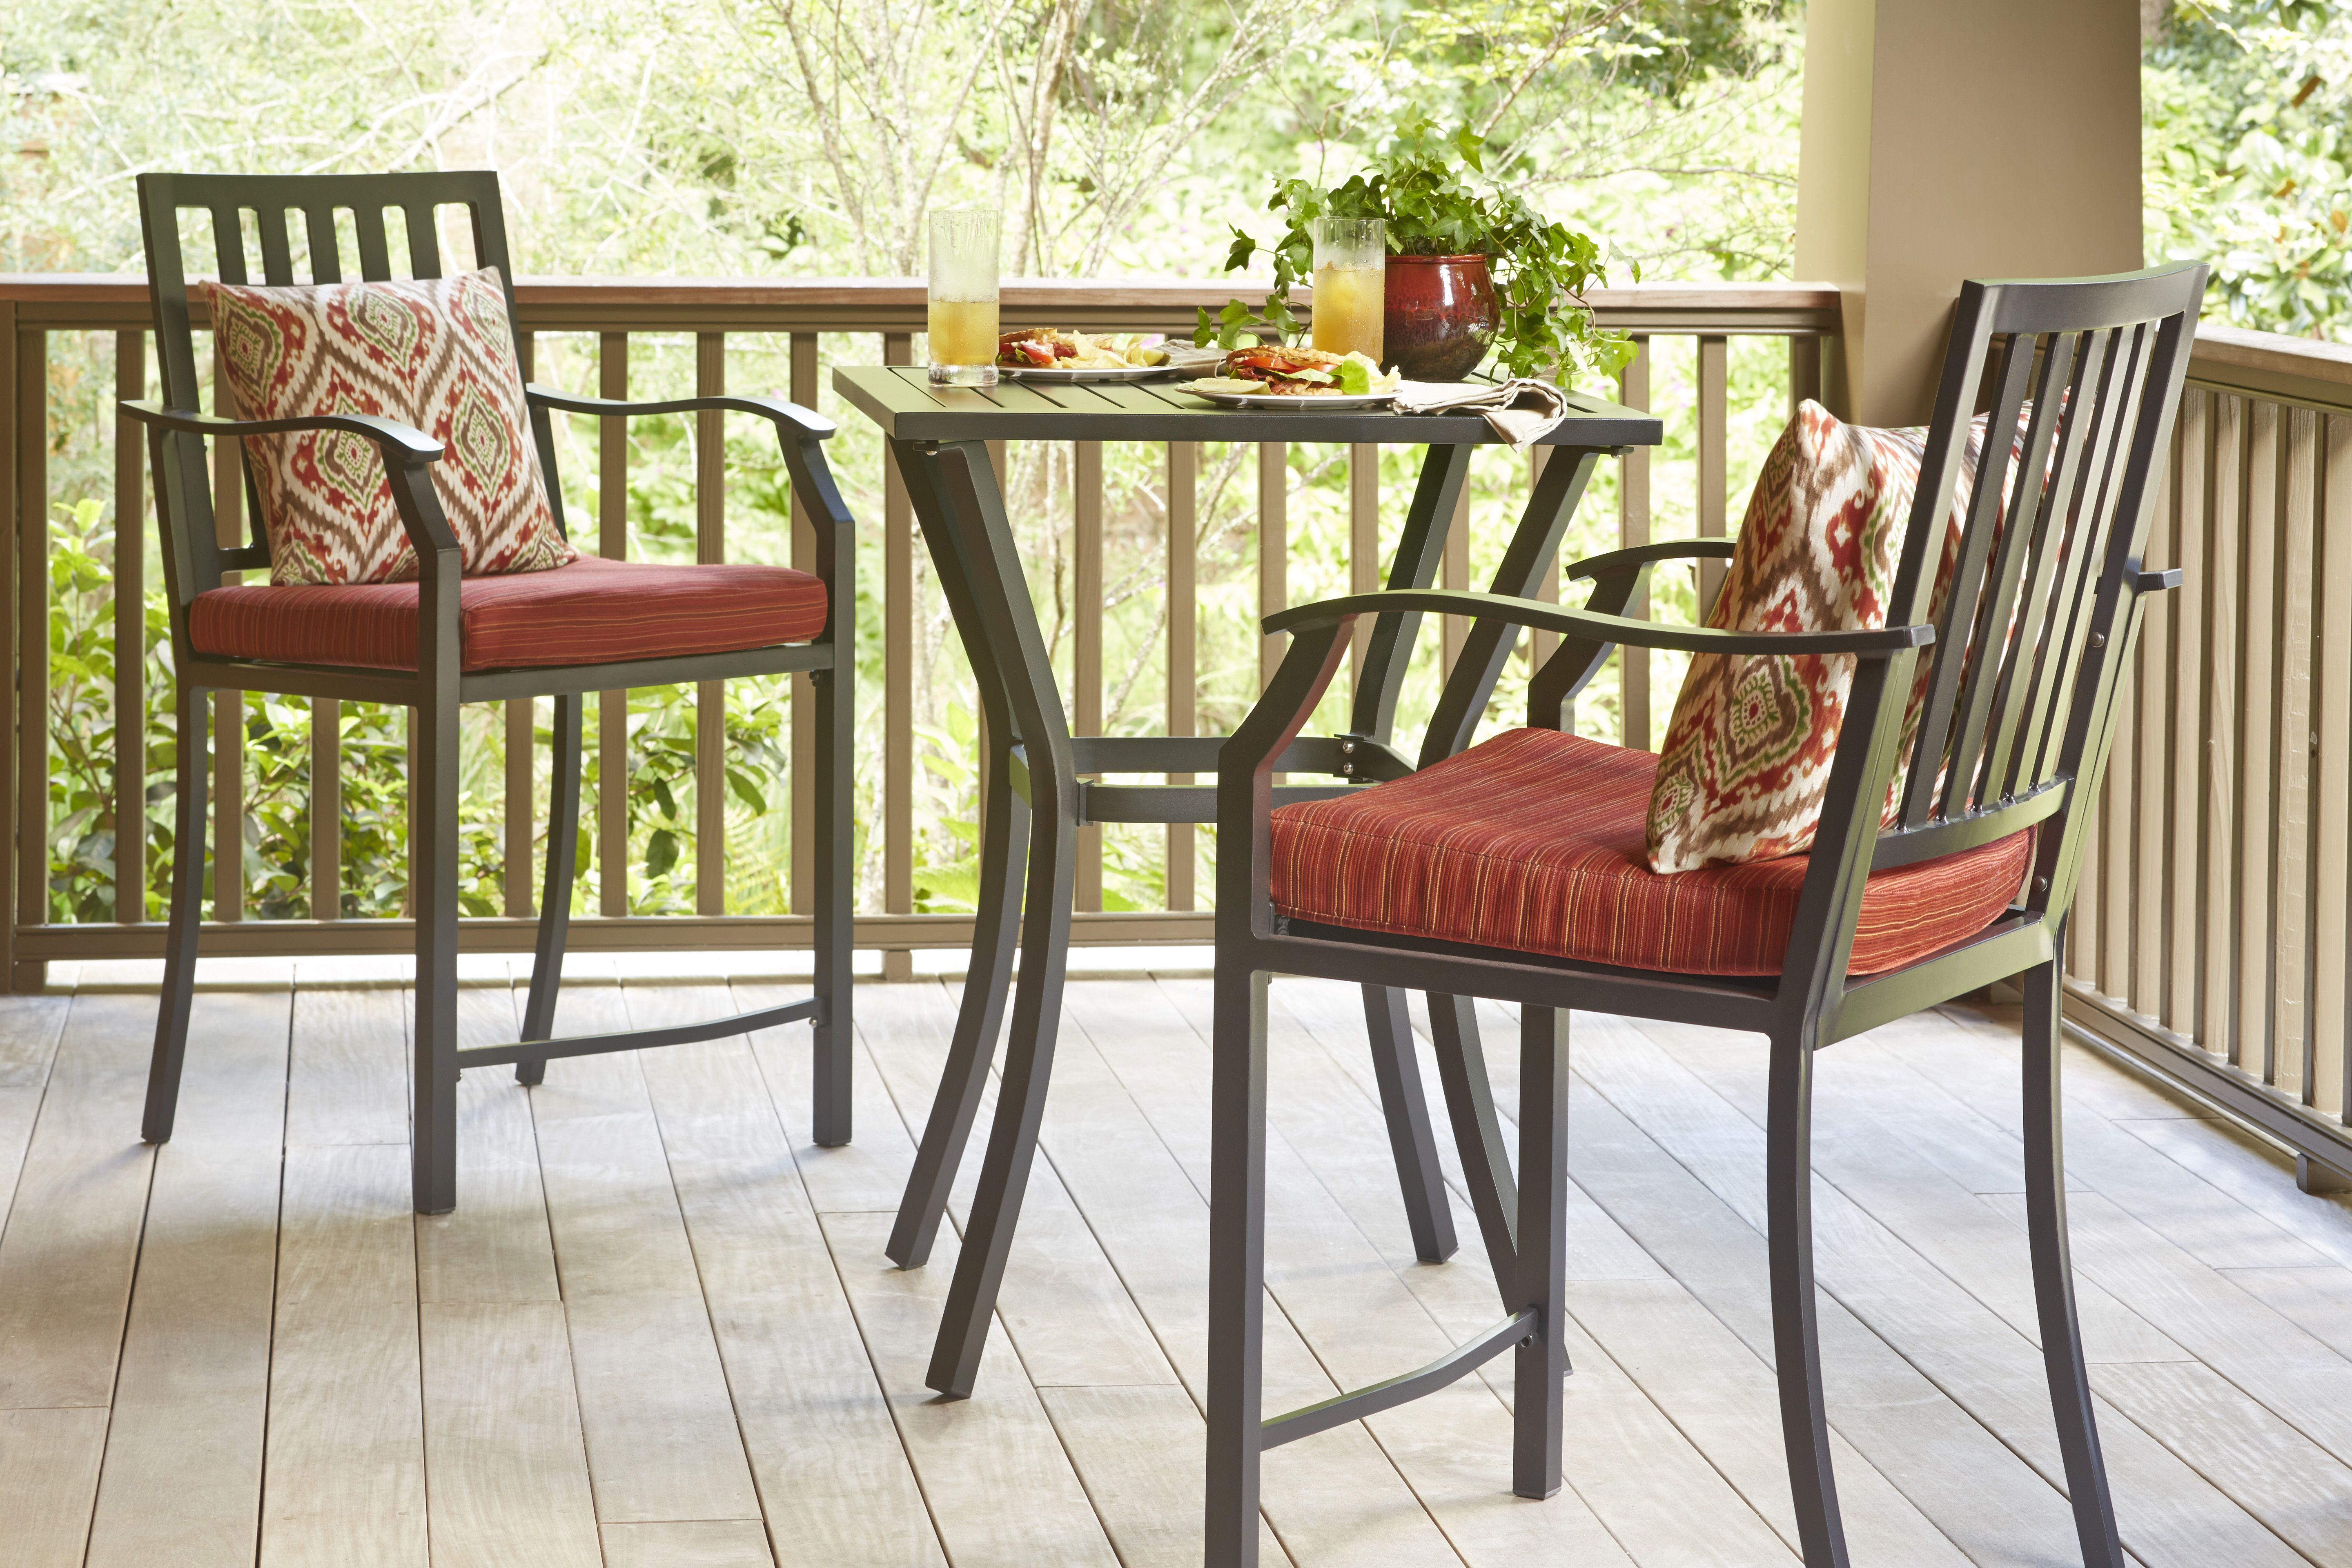 This Balcony Height Patio Set Would Be Perfect For A Small